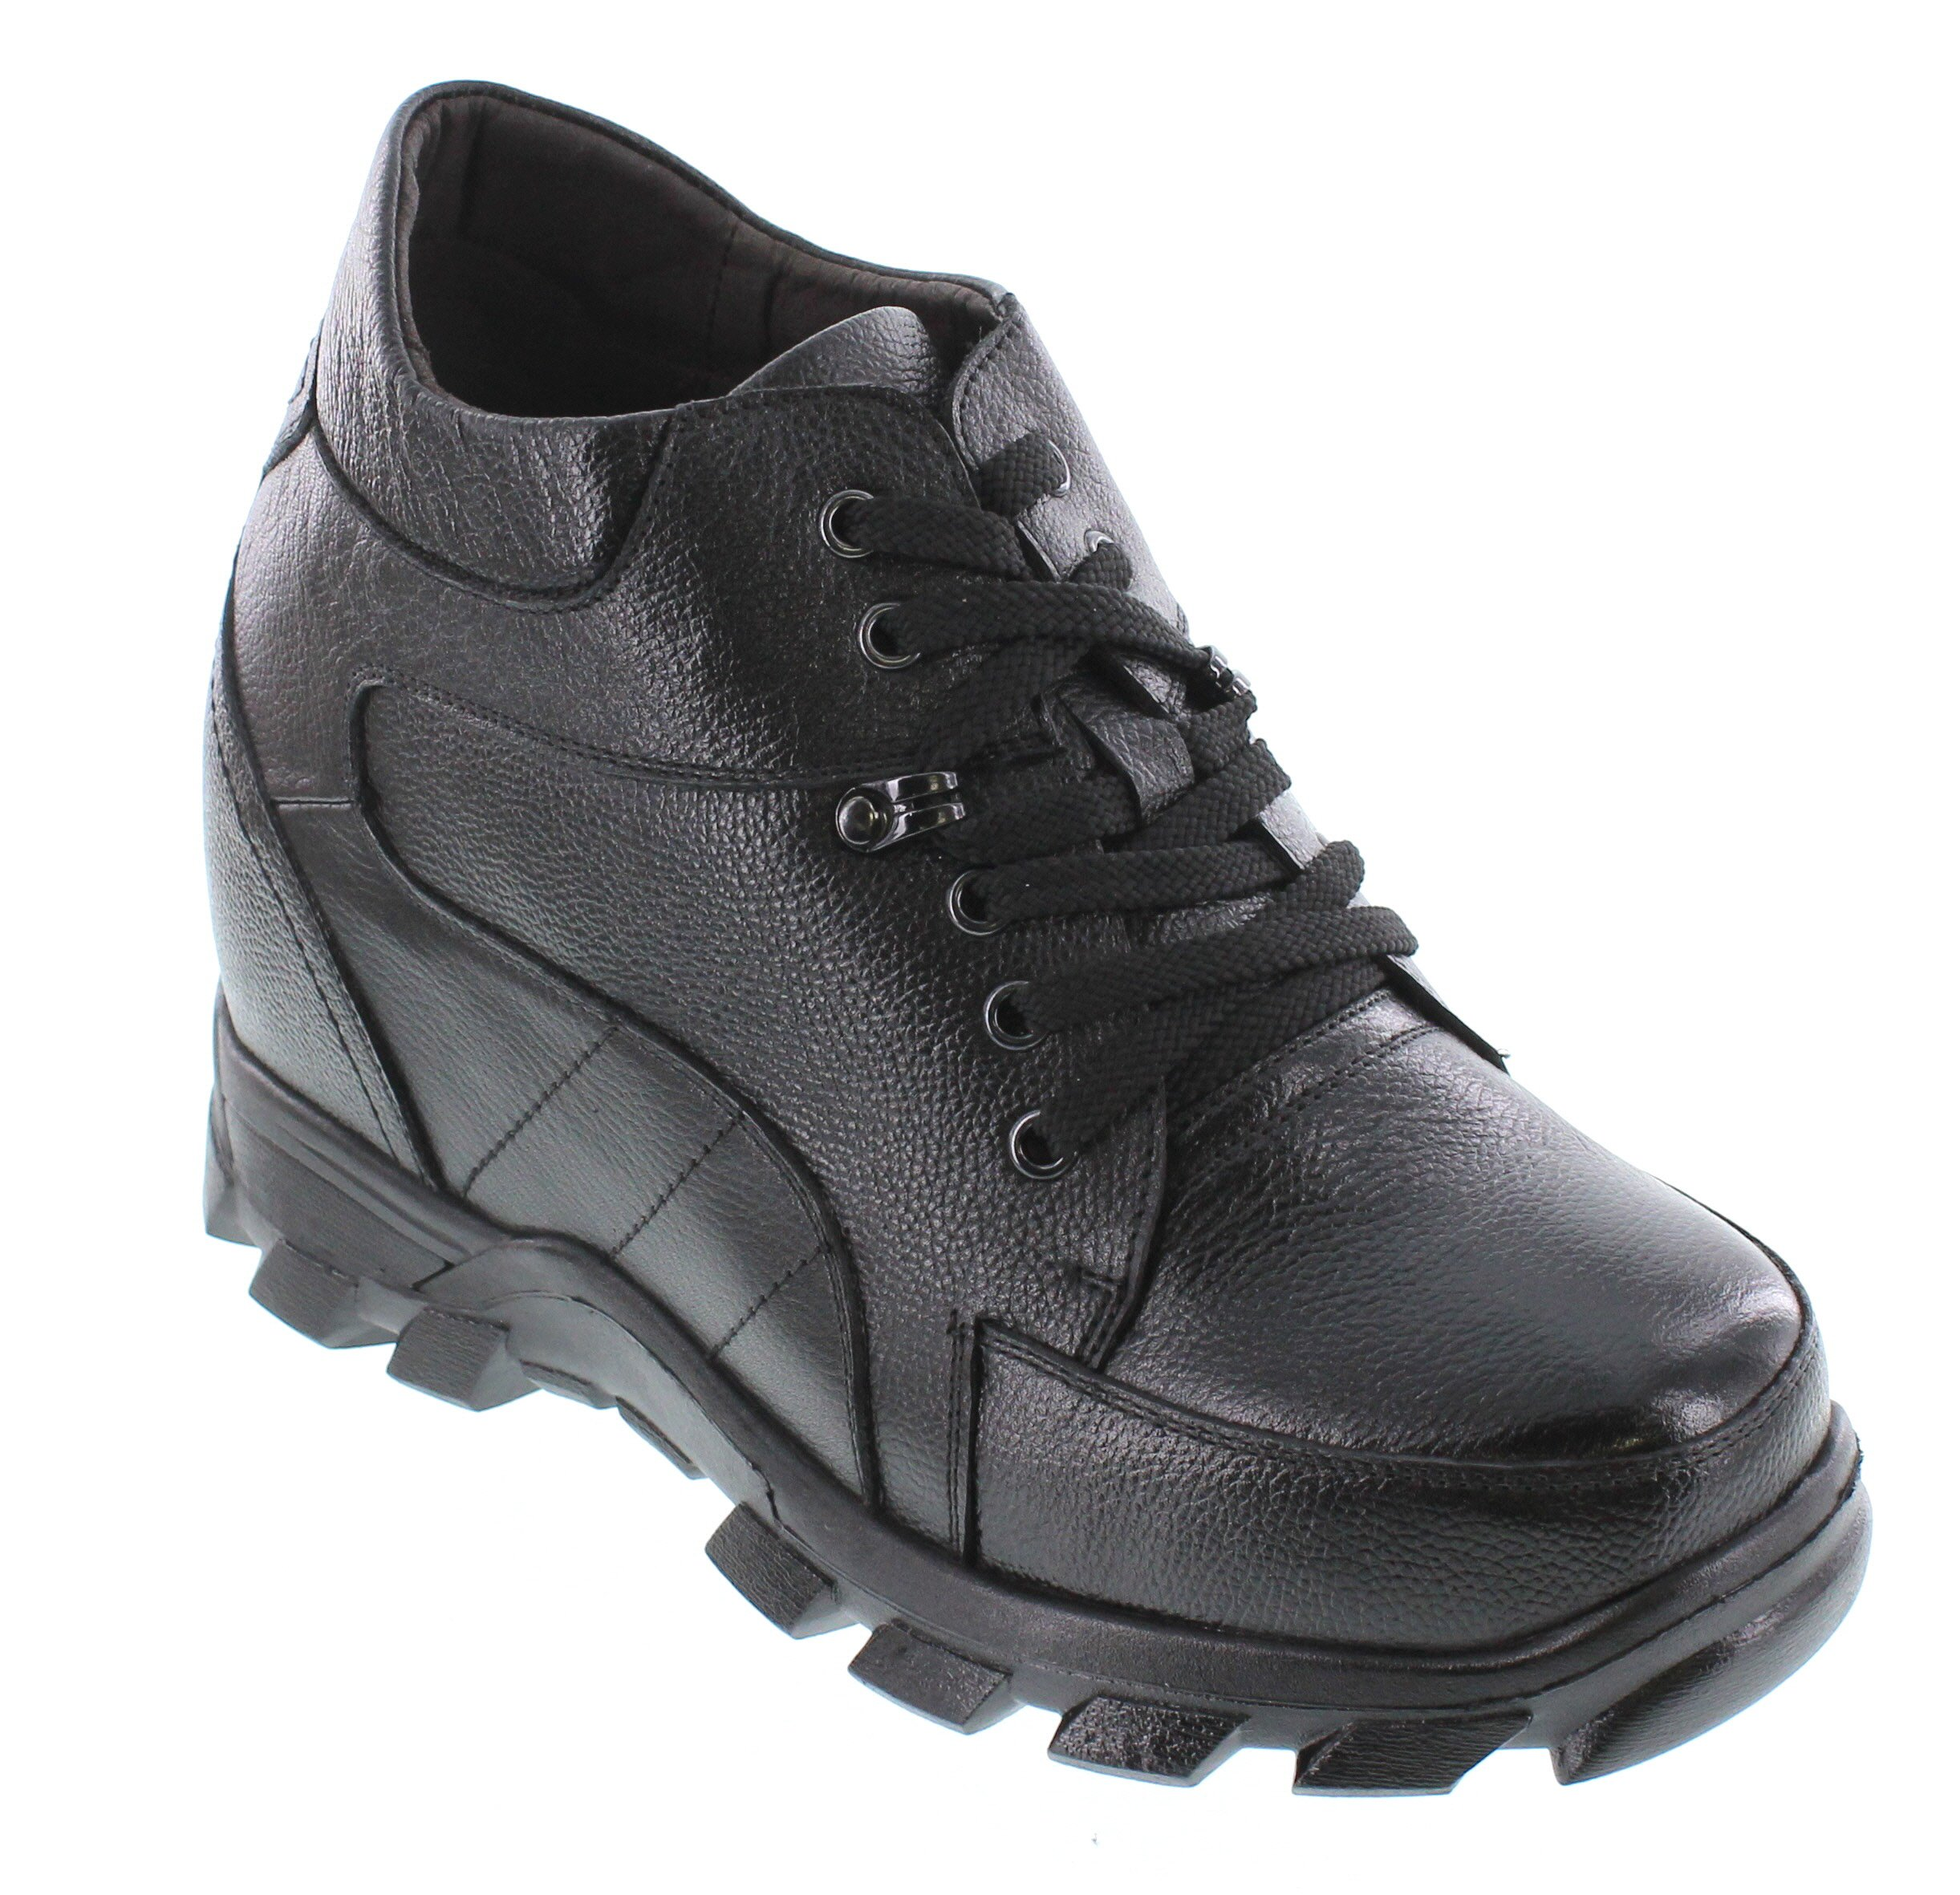 CALDEN - K107216-5.2 Inches Taller - Size 7.5 D US - Height Increasing Elevator Shoes (Black Leather Lace up Extra Heightening Boot)